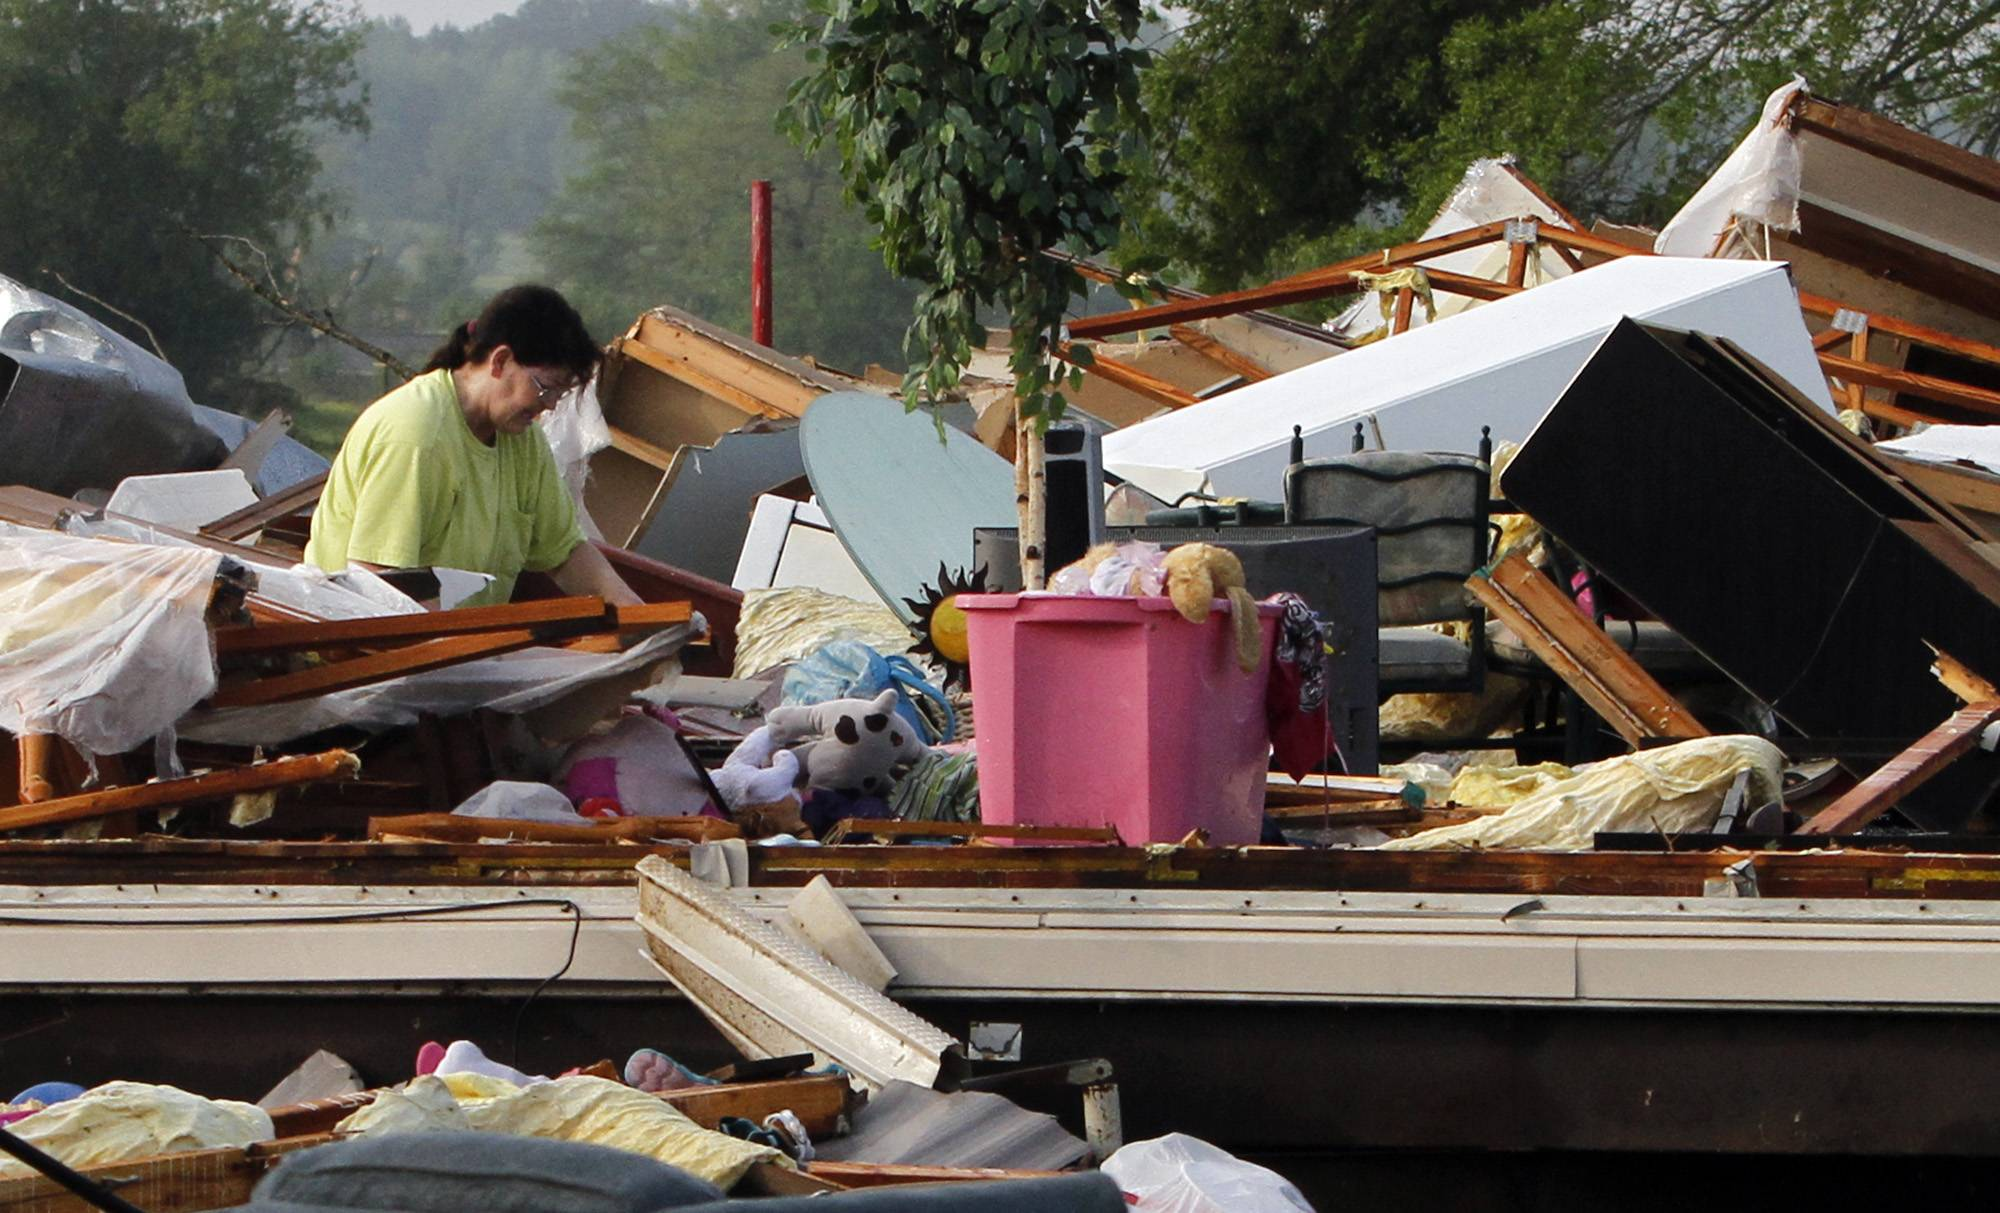 Teresa Ingram looks for belongings in the debris Tuesday after a tornado passed through destroying Billy Barbs mobile home park in Athens, Ala. A dangerous storm system that spawned a chain of deadly tornadoes over three days flattened homes and businesses, forced frightened residents in more than half a dozen states to take cover and left tens of thousands in the dark Tuesday morning.